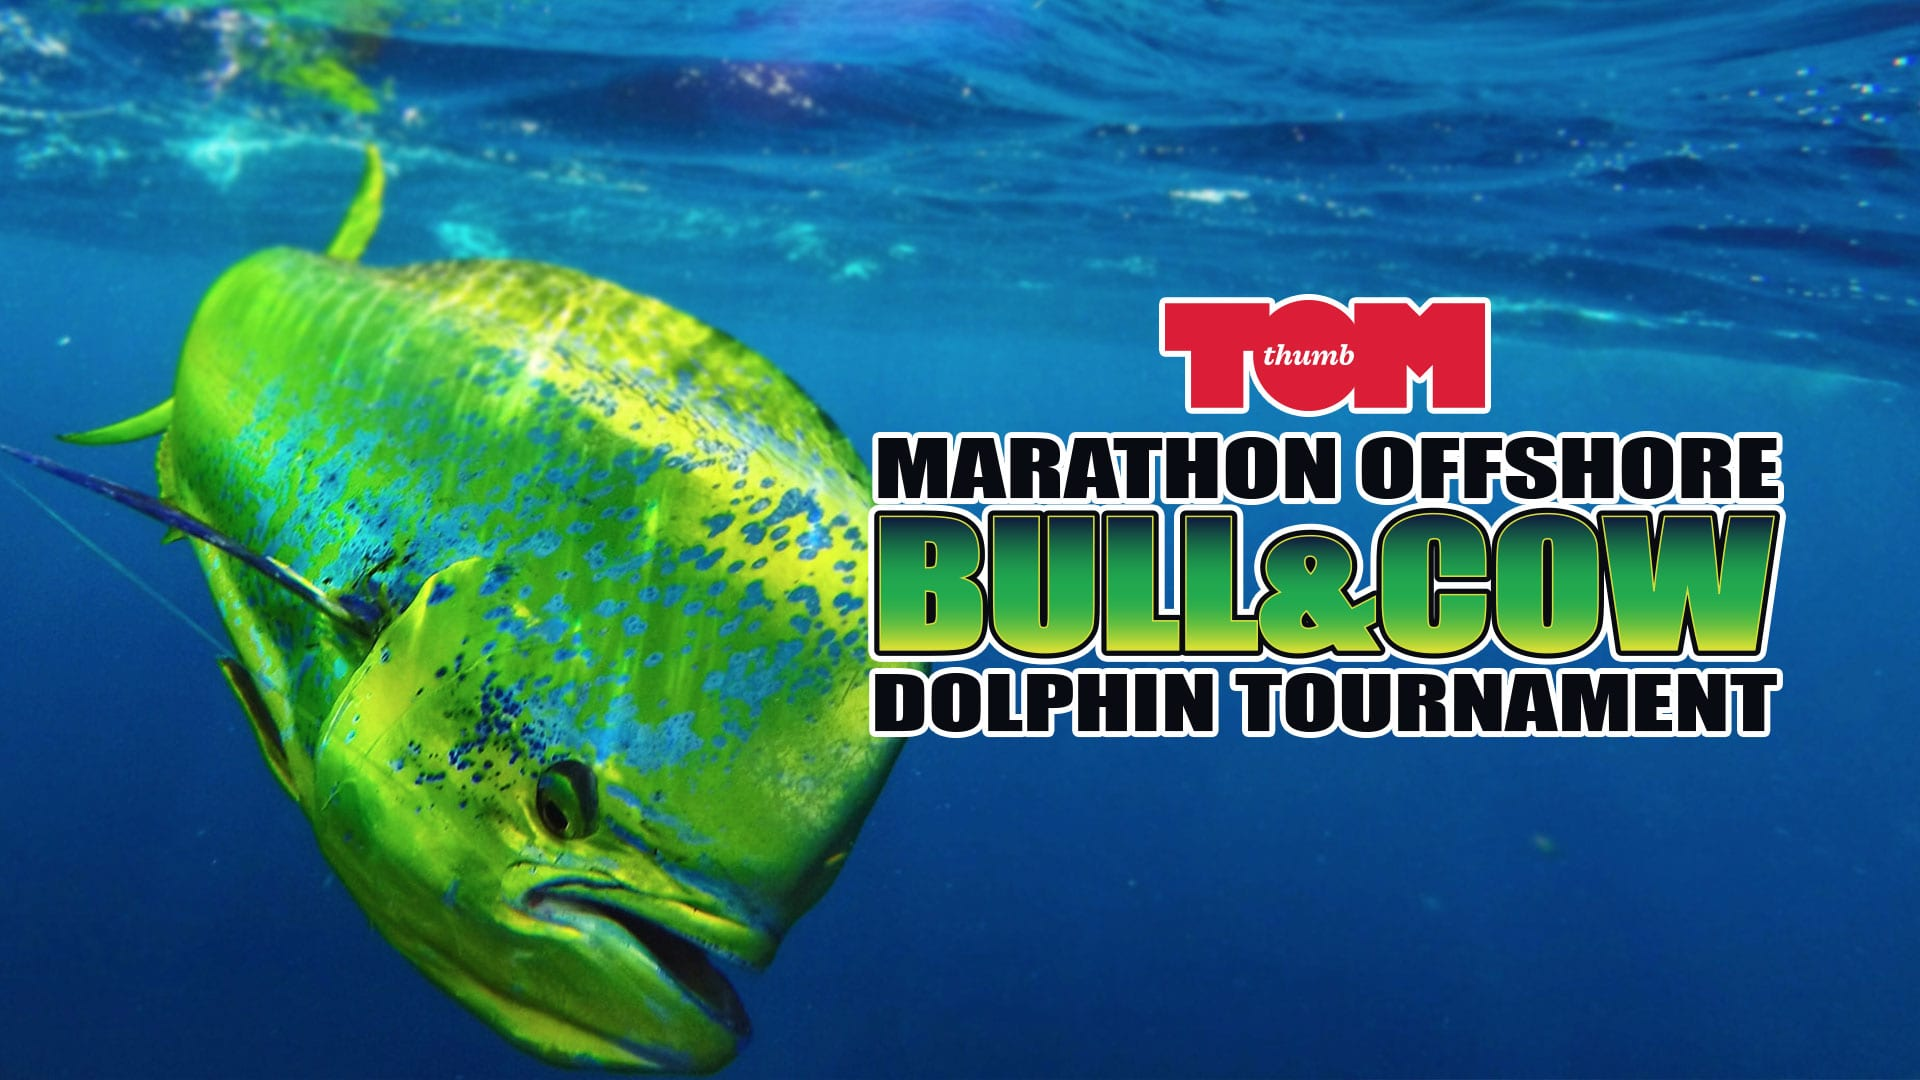 Tom Thumb Marathon Offshore Fishing Tournament in the Florida Keys